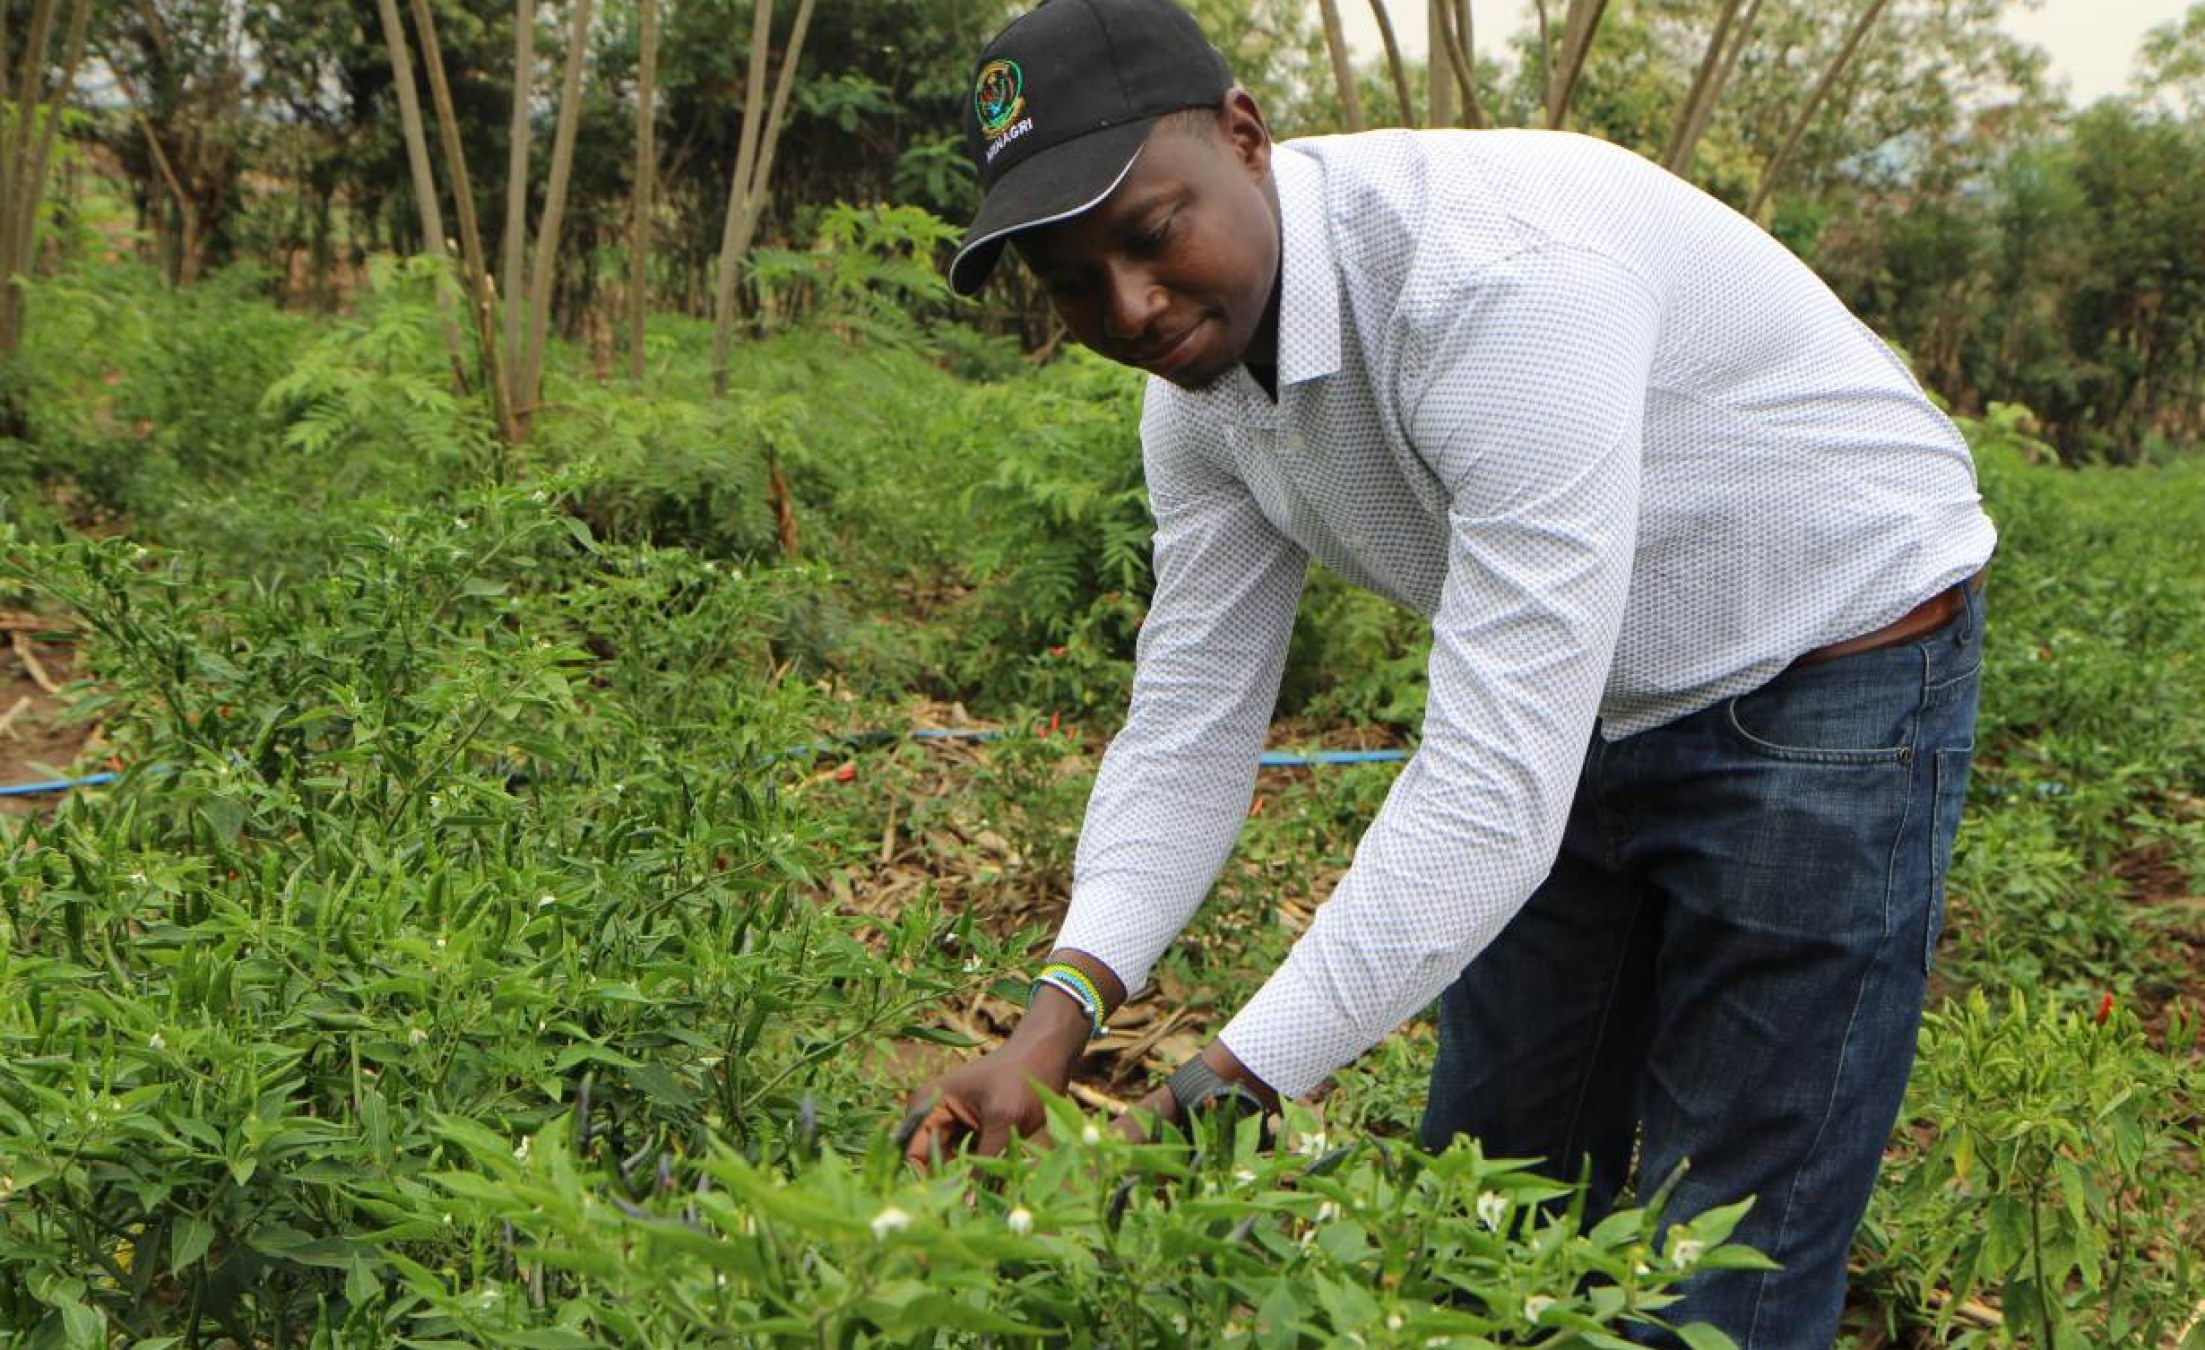 Africa: COVID-19 Recovery Is a Chance to Improve the African Food System